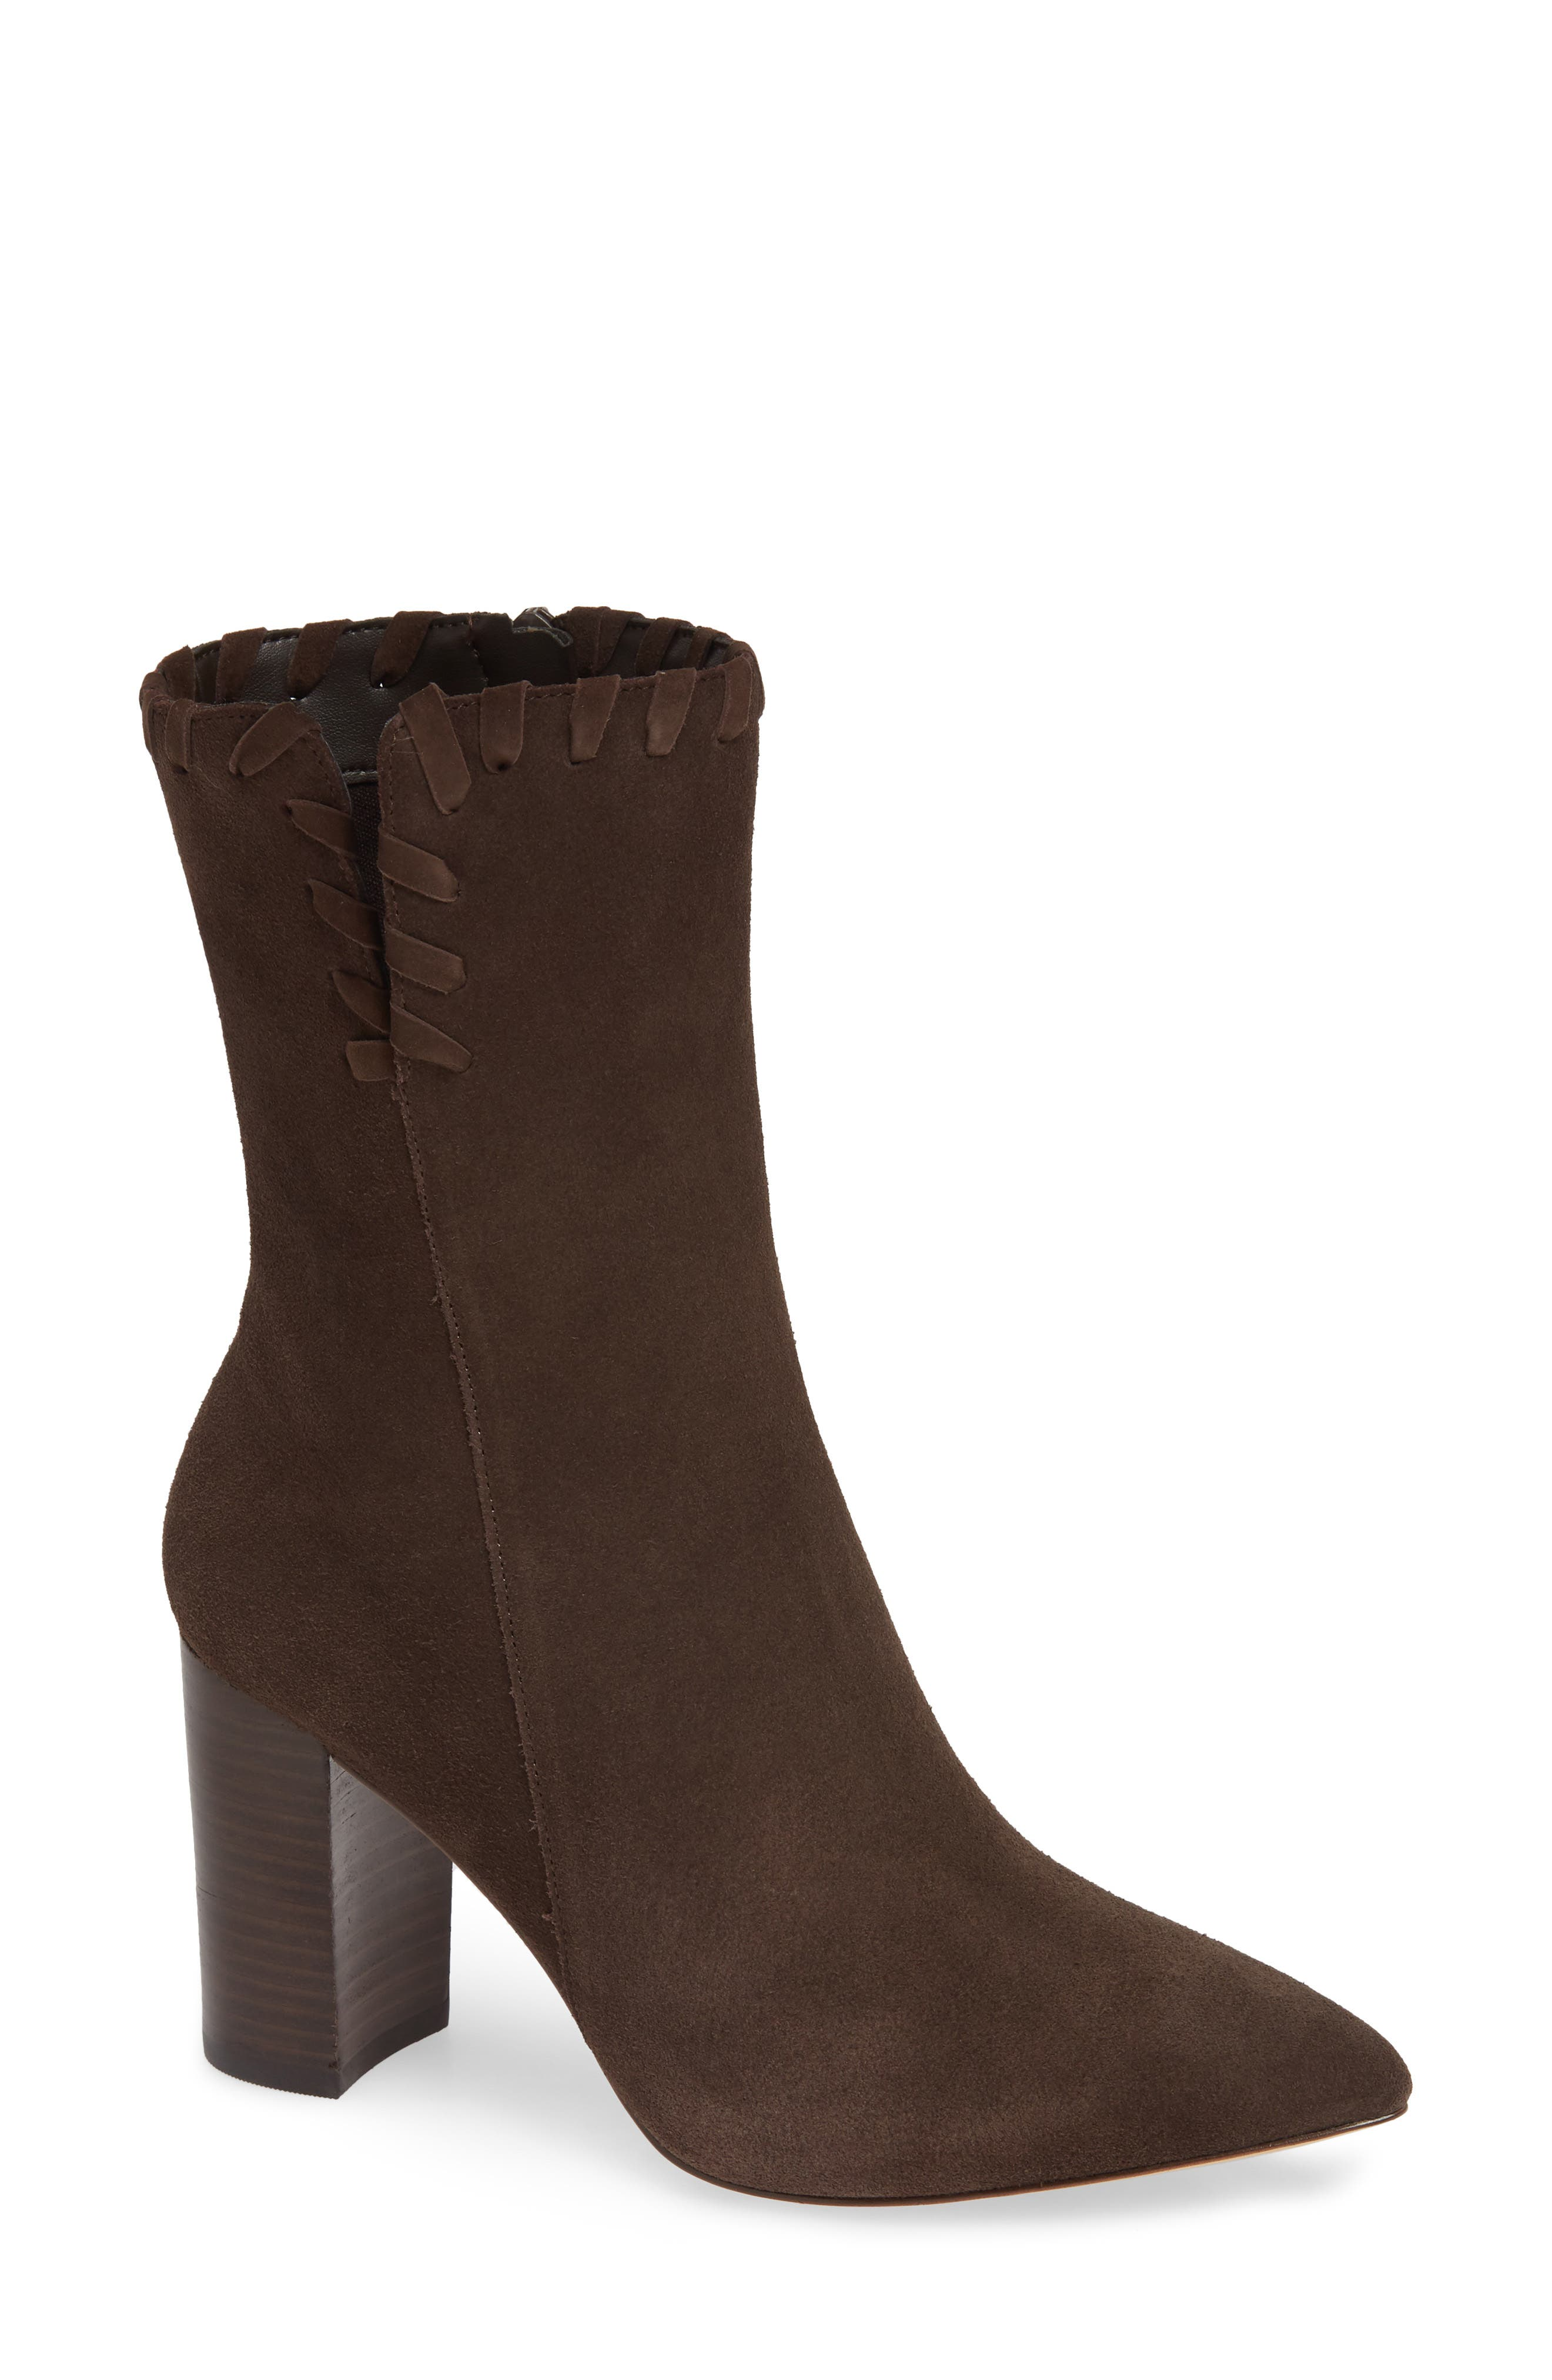 Camilla Bootie,                             Main thumbnail 1, color,                             CHOCOLATE SUEDE